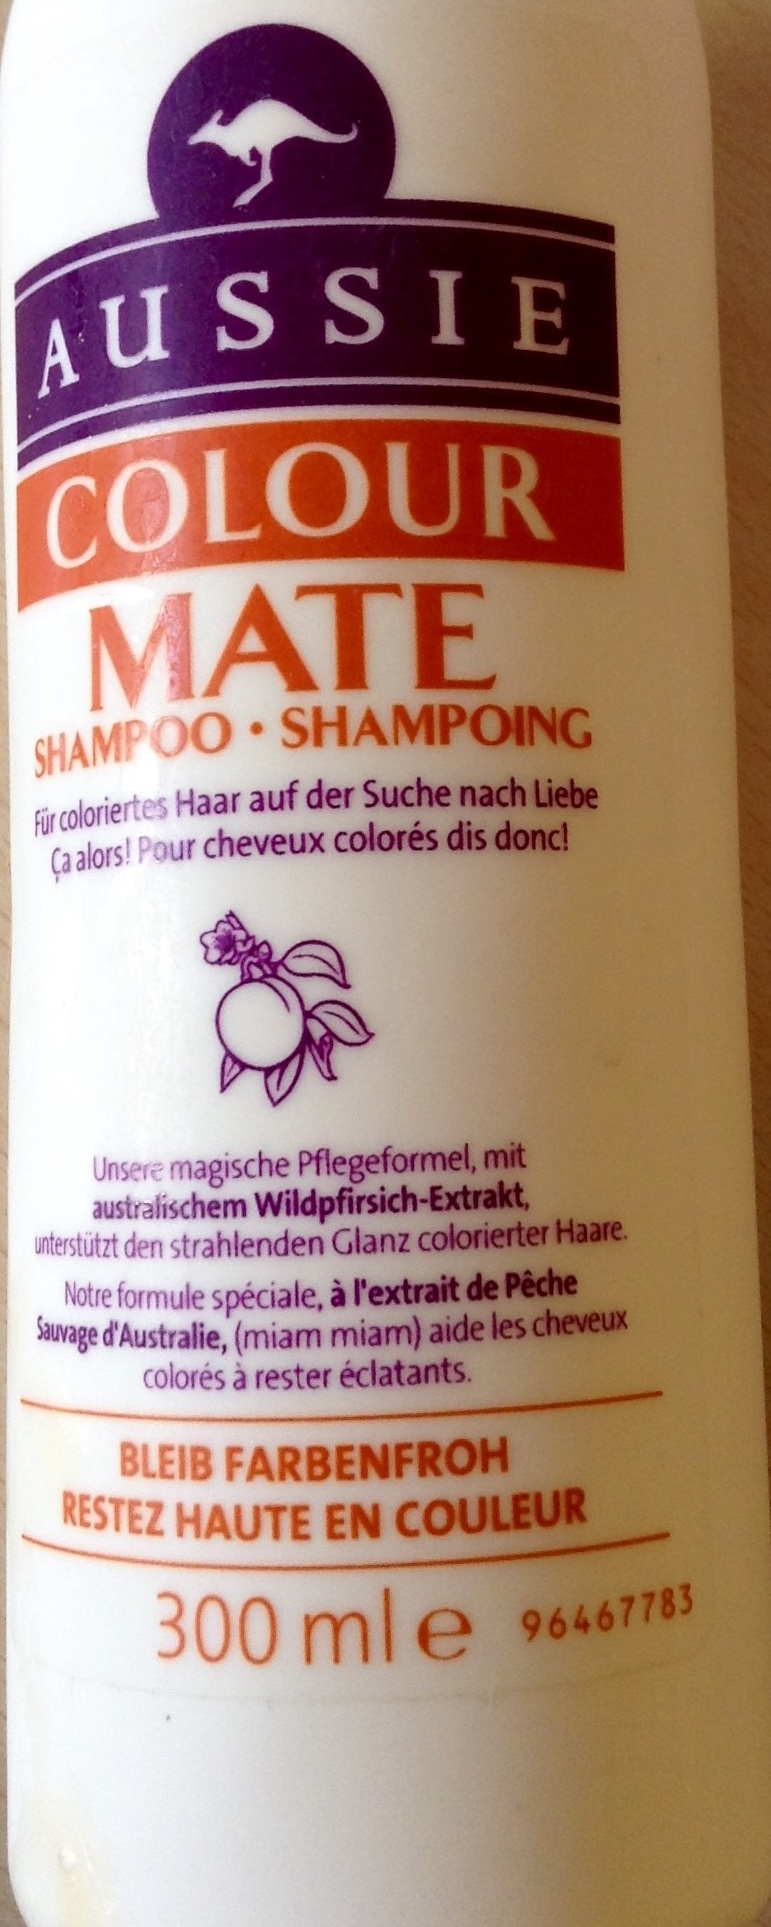 Shampoing colou mate - Product - fr